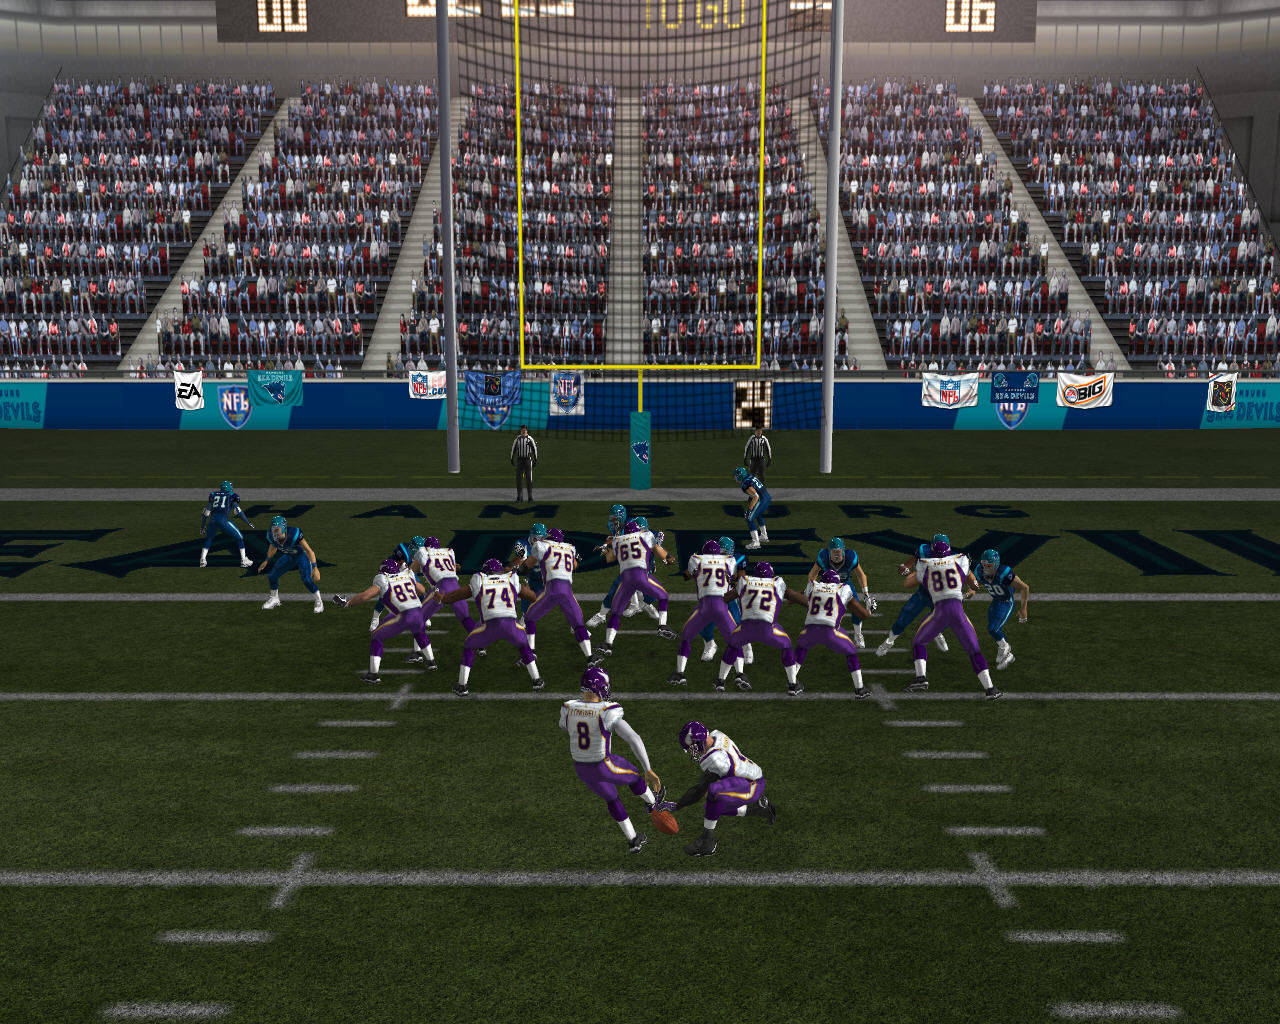 Madden NFL 07 Windows Team is close to get a touchdown